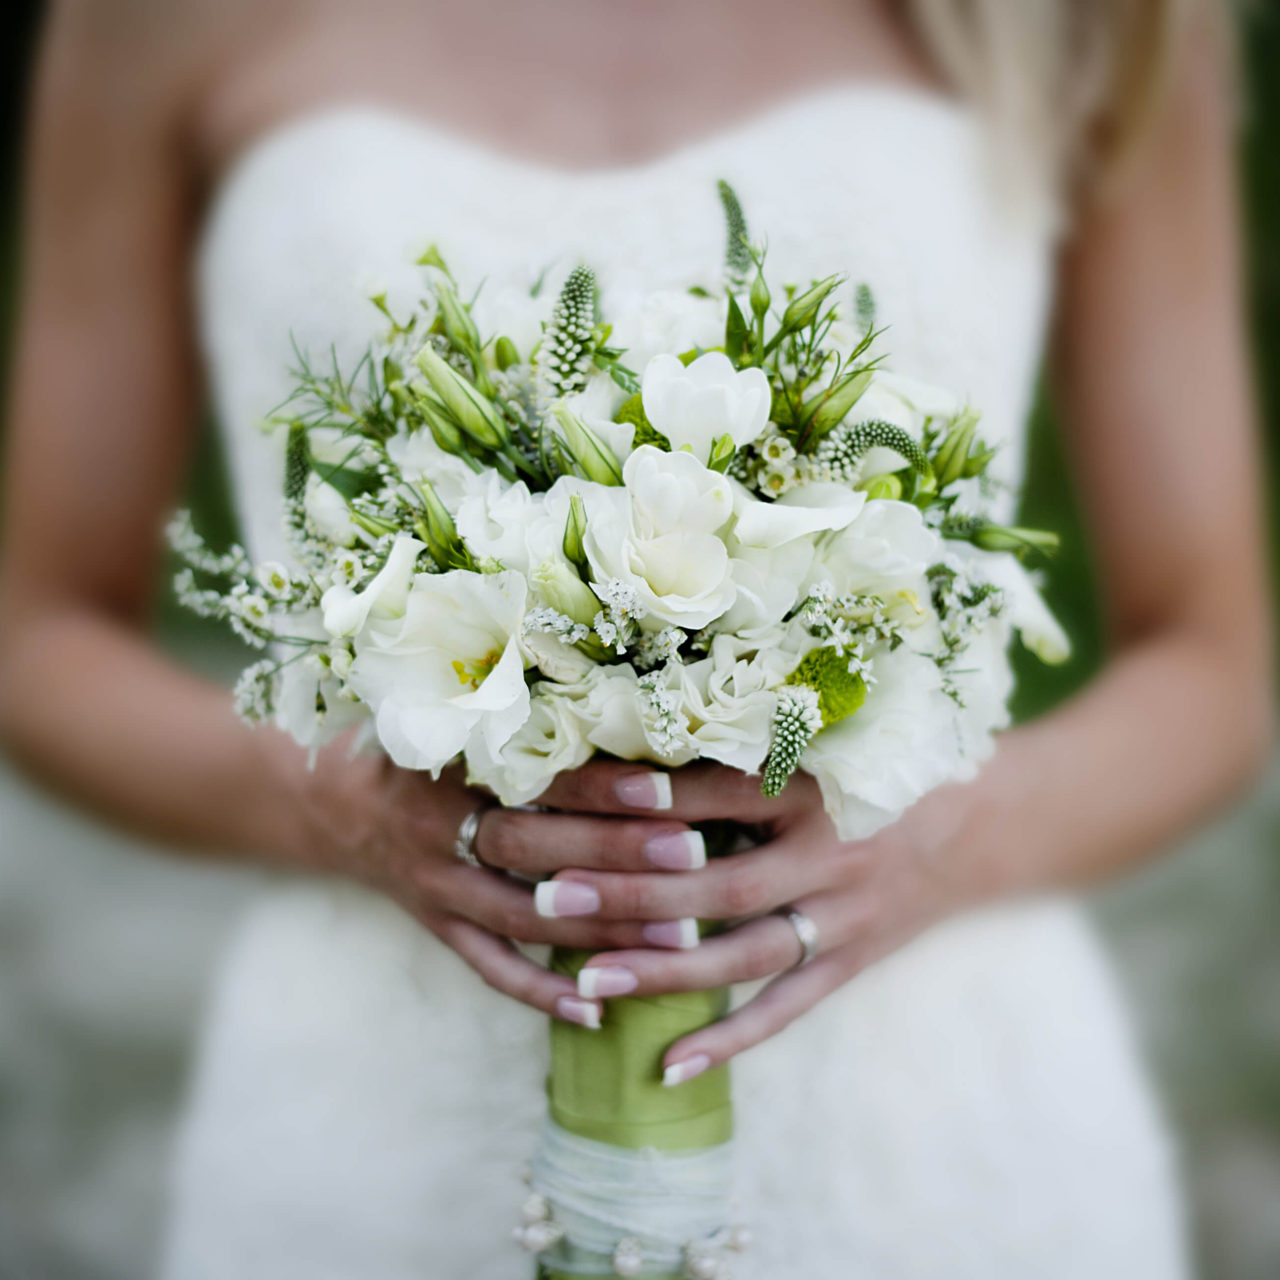 https://rbweddingphotography.com/wp-content/uploads/2020/10/photodune-11537635-wedding-bouquet-l-1280x1280.jpg